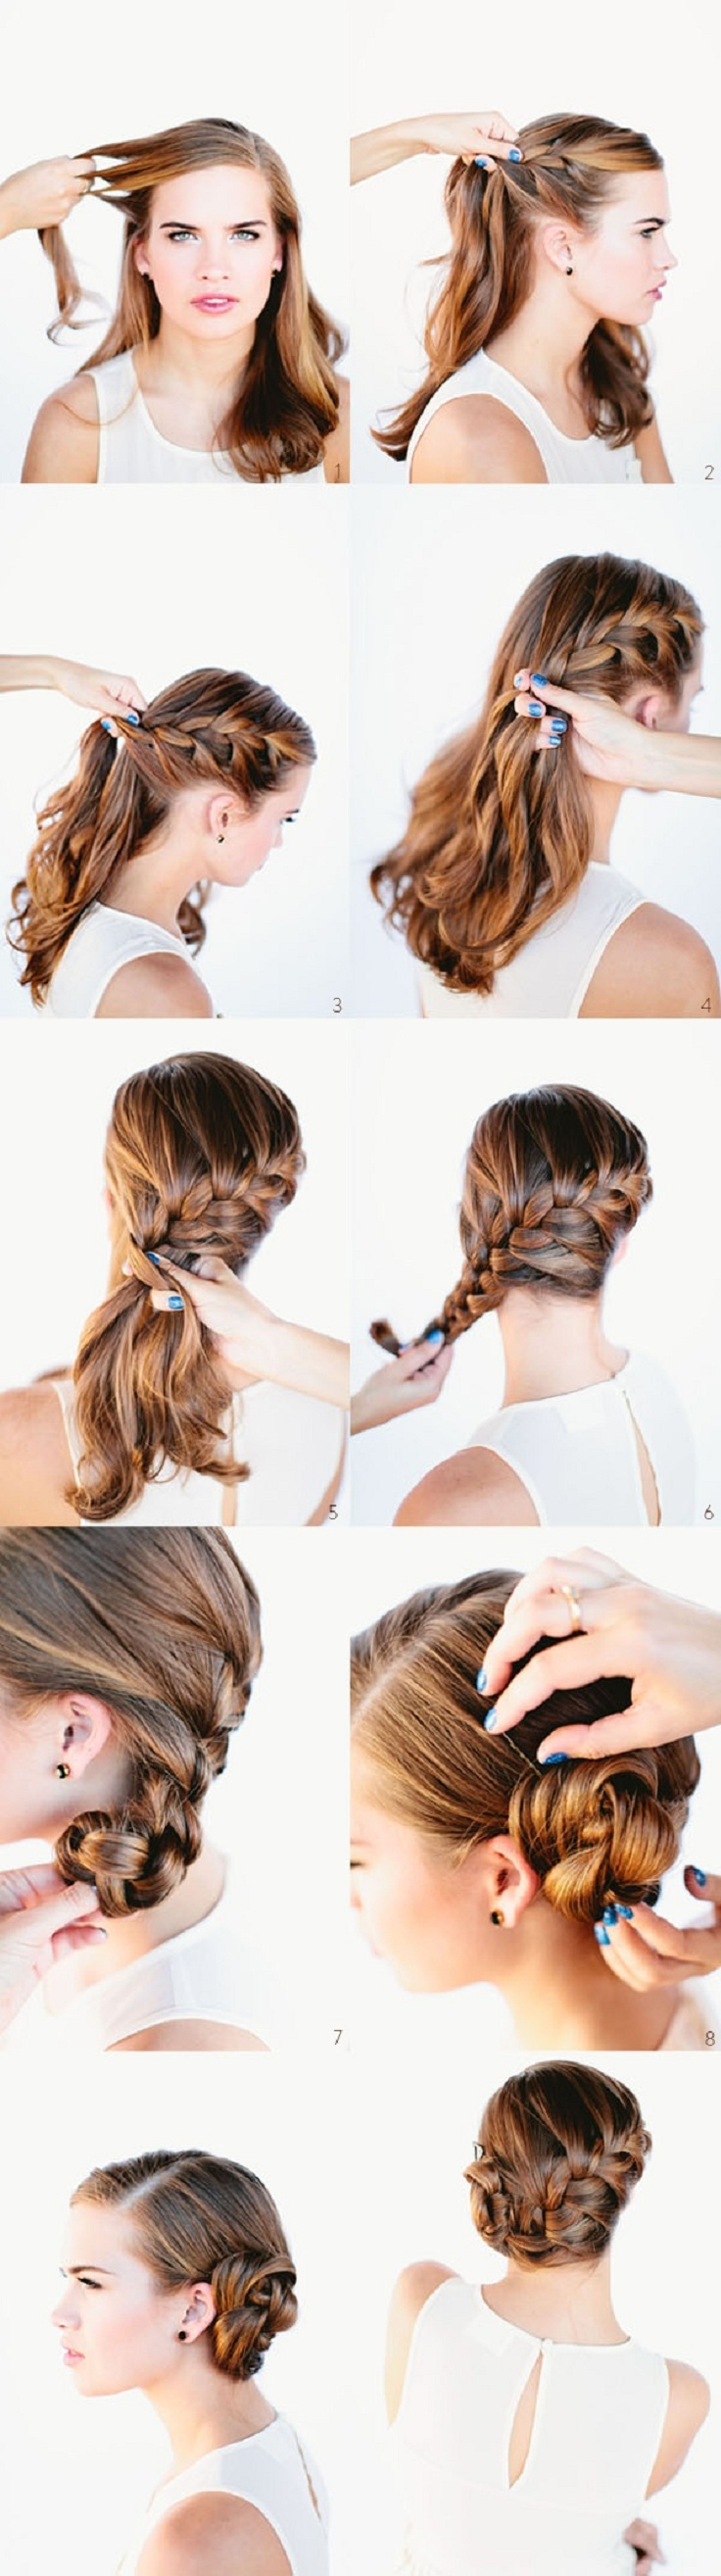 Top 10 Hair Braid Tutorials For Every Need